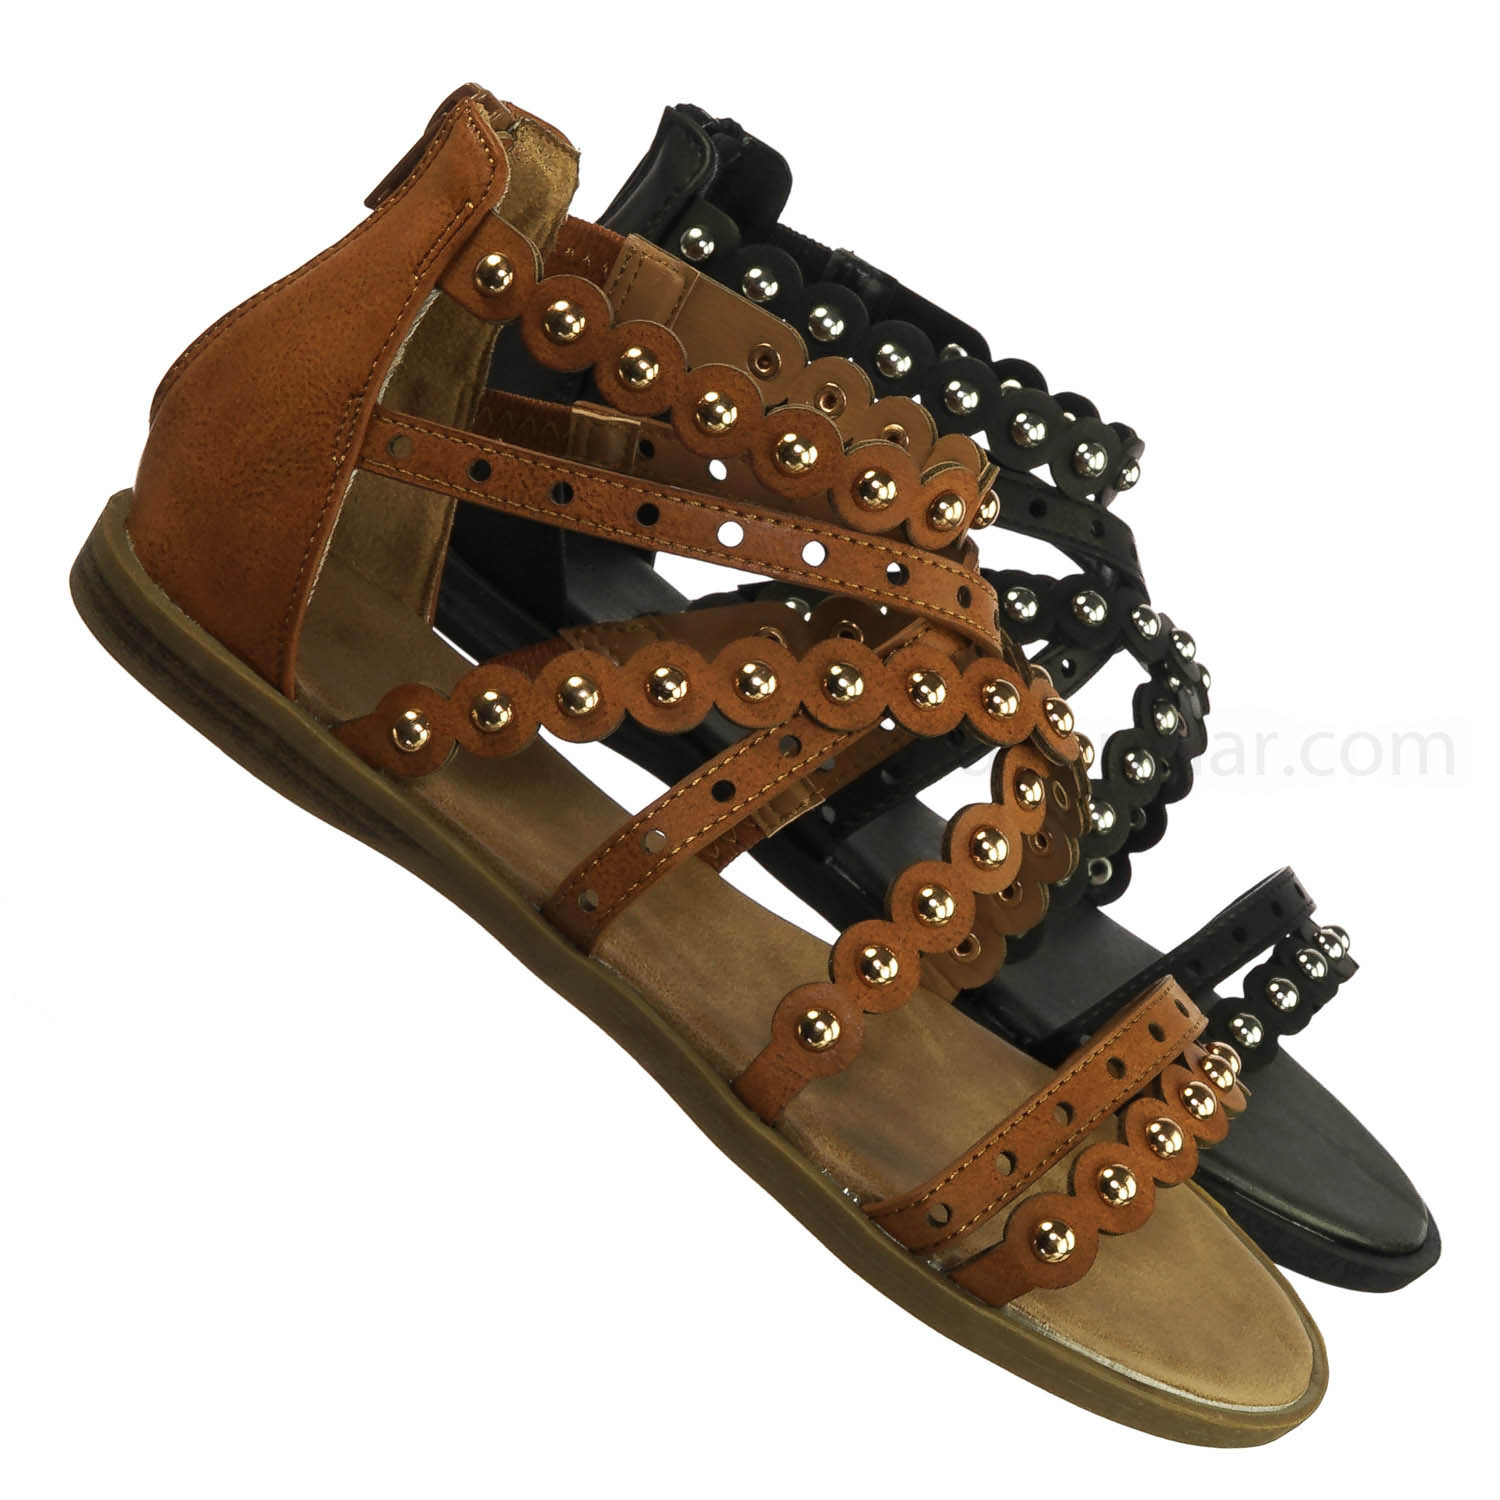 f4b057ac9215d2 Enjoy39 by Bamboo Metal Rivet Strappy Gladiator Flat Sandal - Punk Biker  Antique Shoes 0